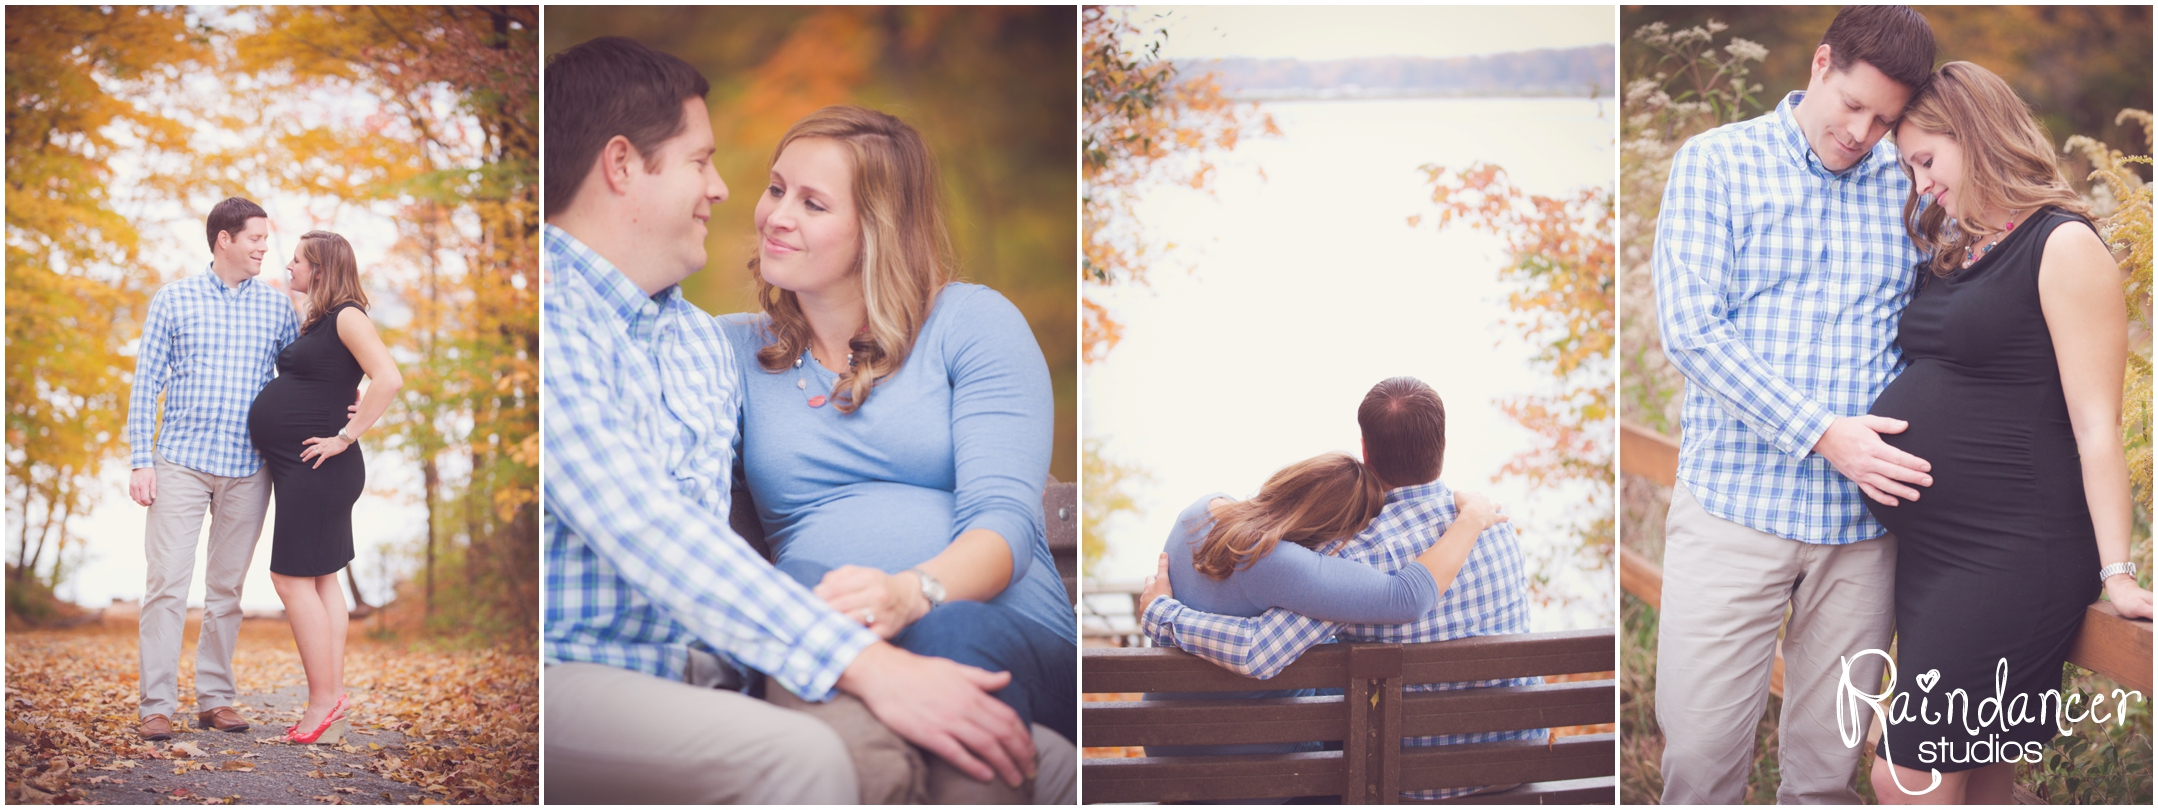 Indianapolis Maternity Photographer, Indy Maternity photographer, Indy maternity photography, Indianapolis maternity photography, Indy newborn photograher, Indianapolis newborn photographer, Indianapolis Grow With Me Baby Sessions